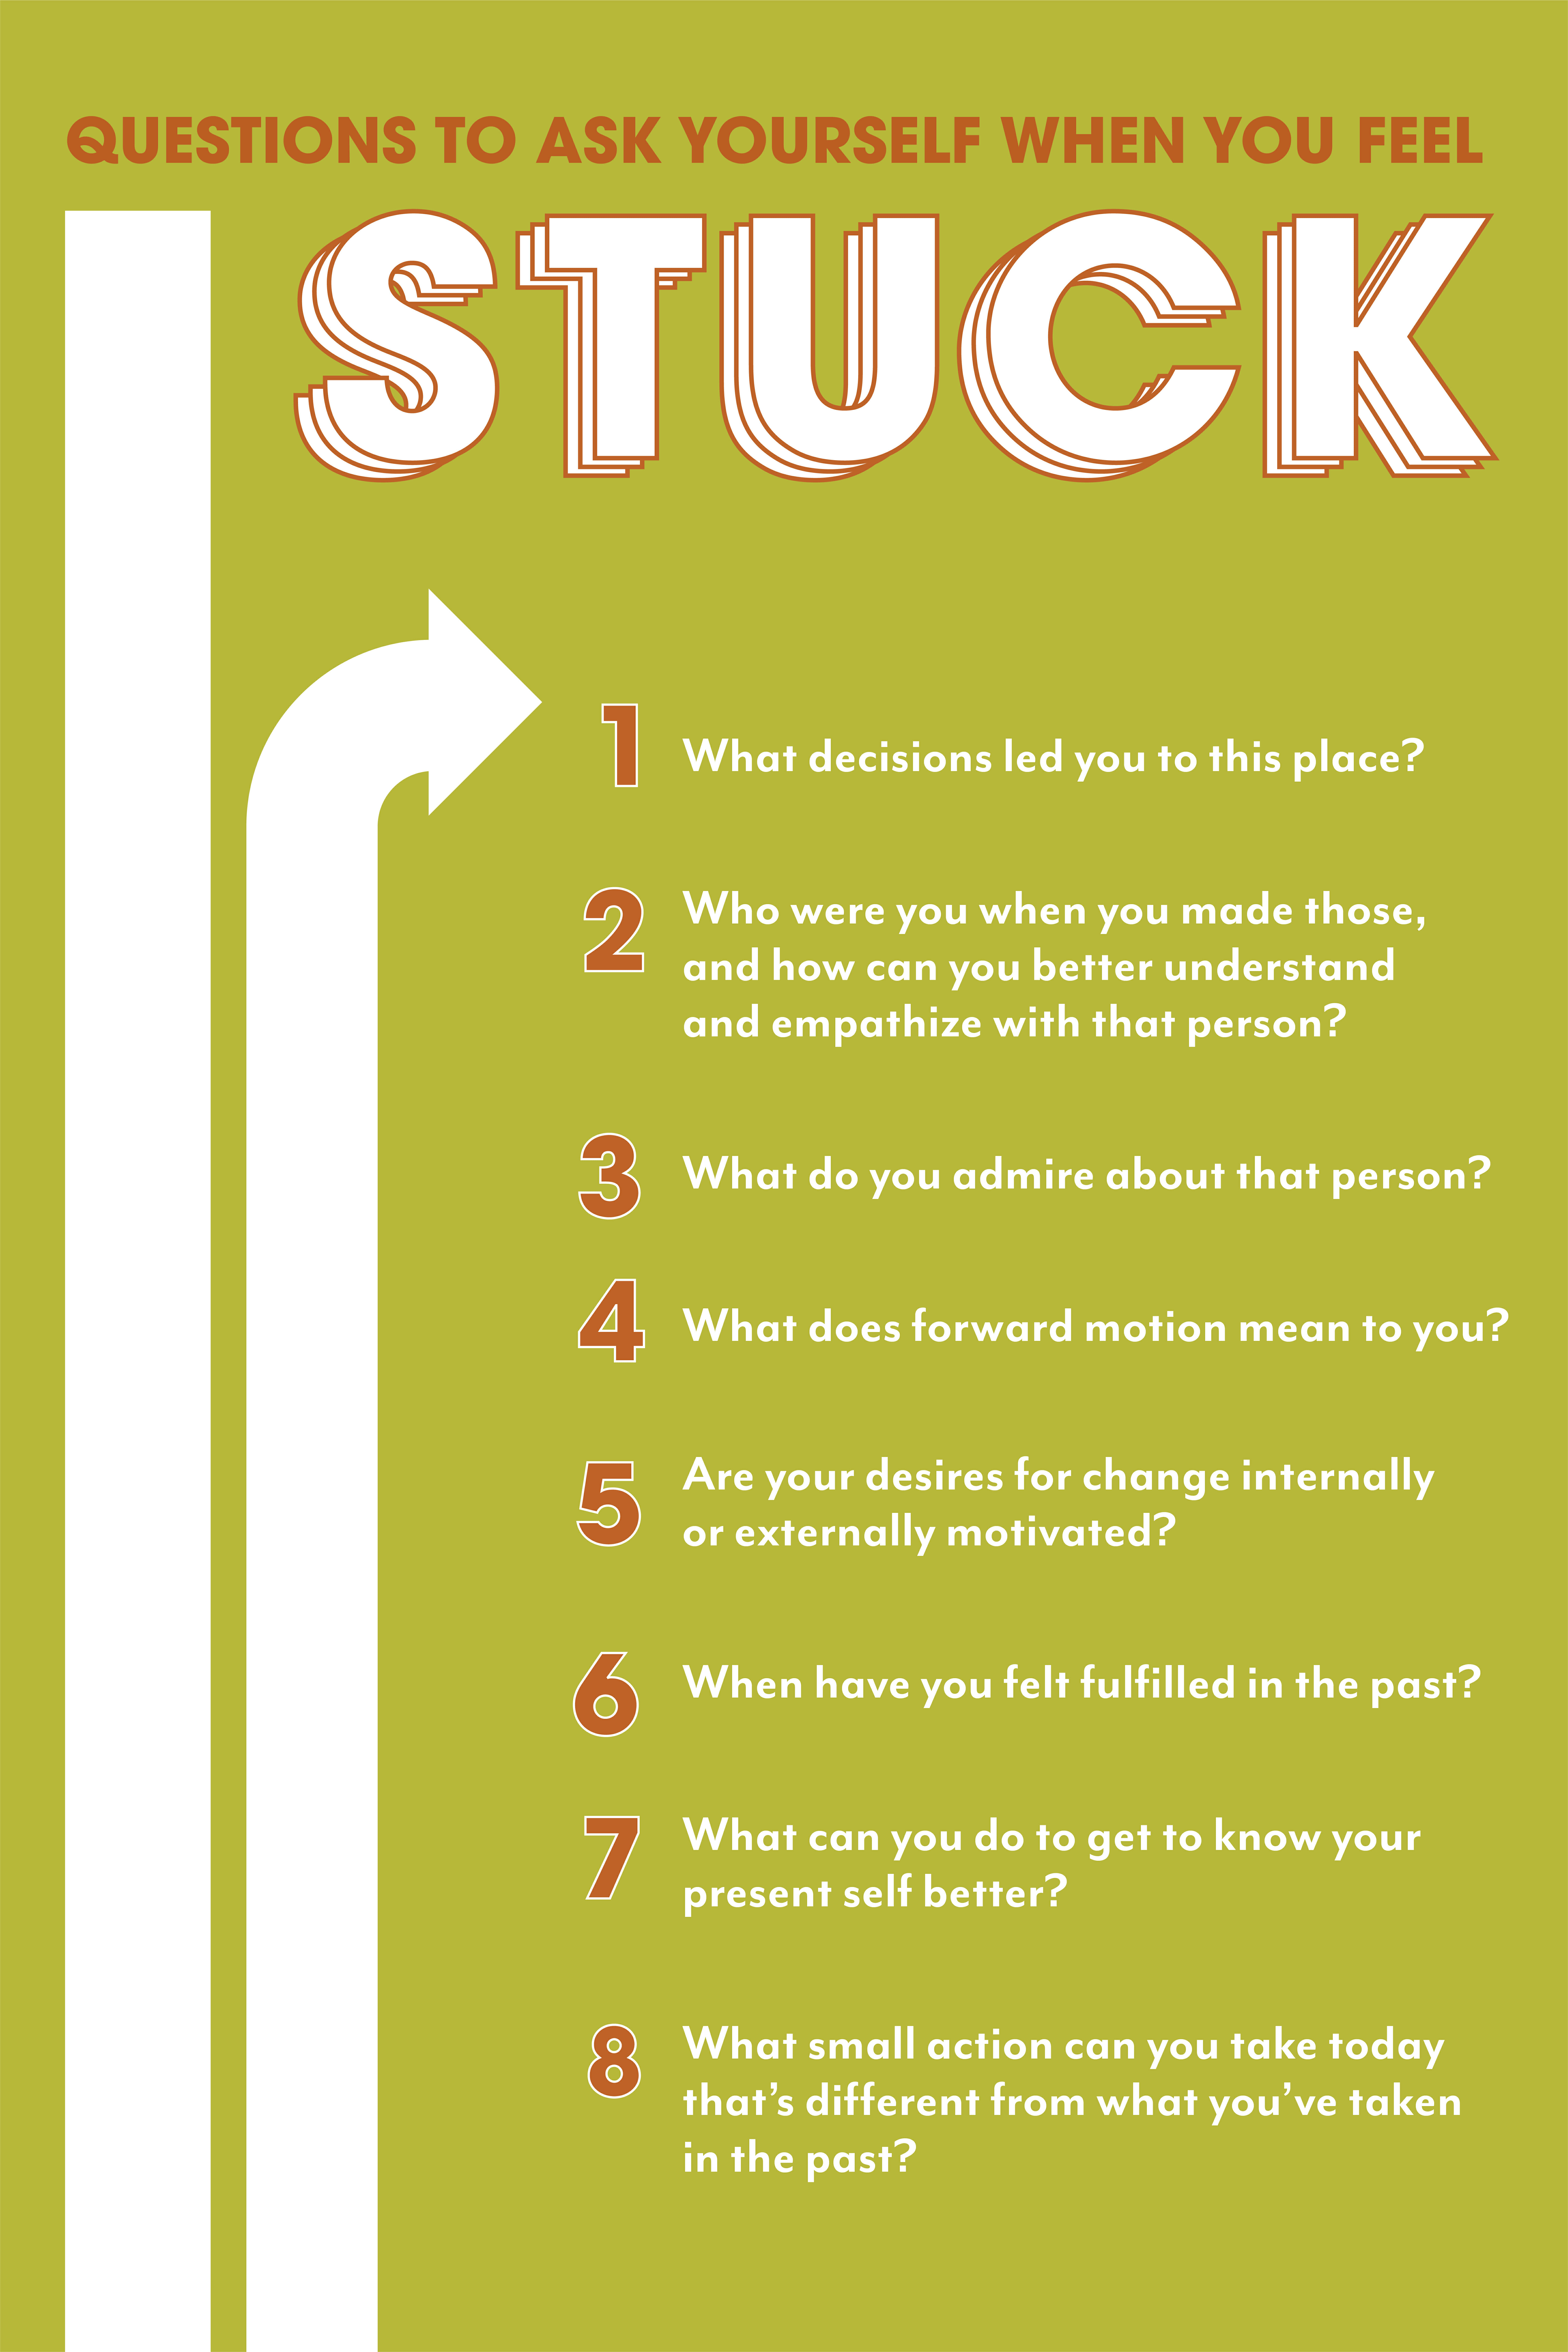 Questions to ask yourself when you feel stuck